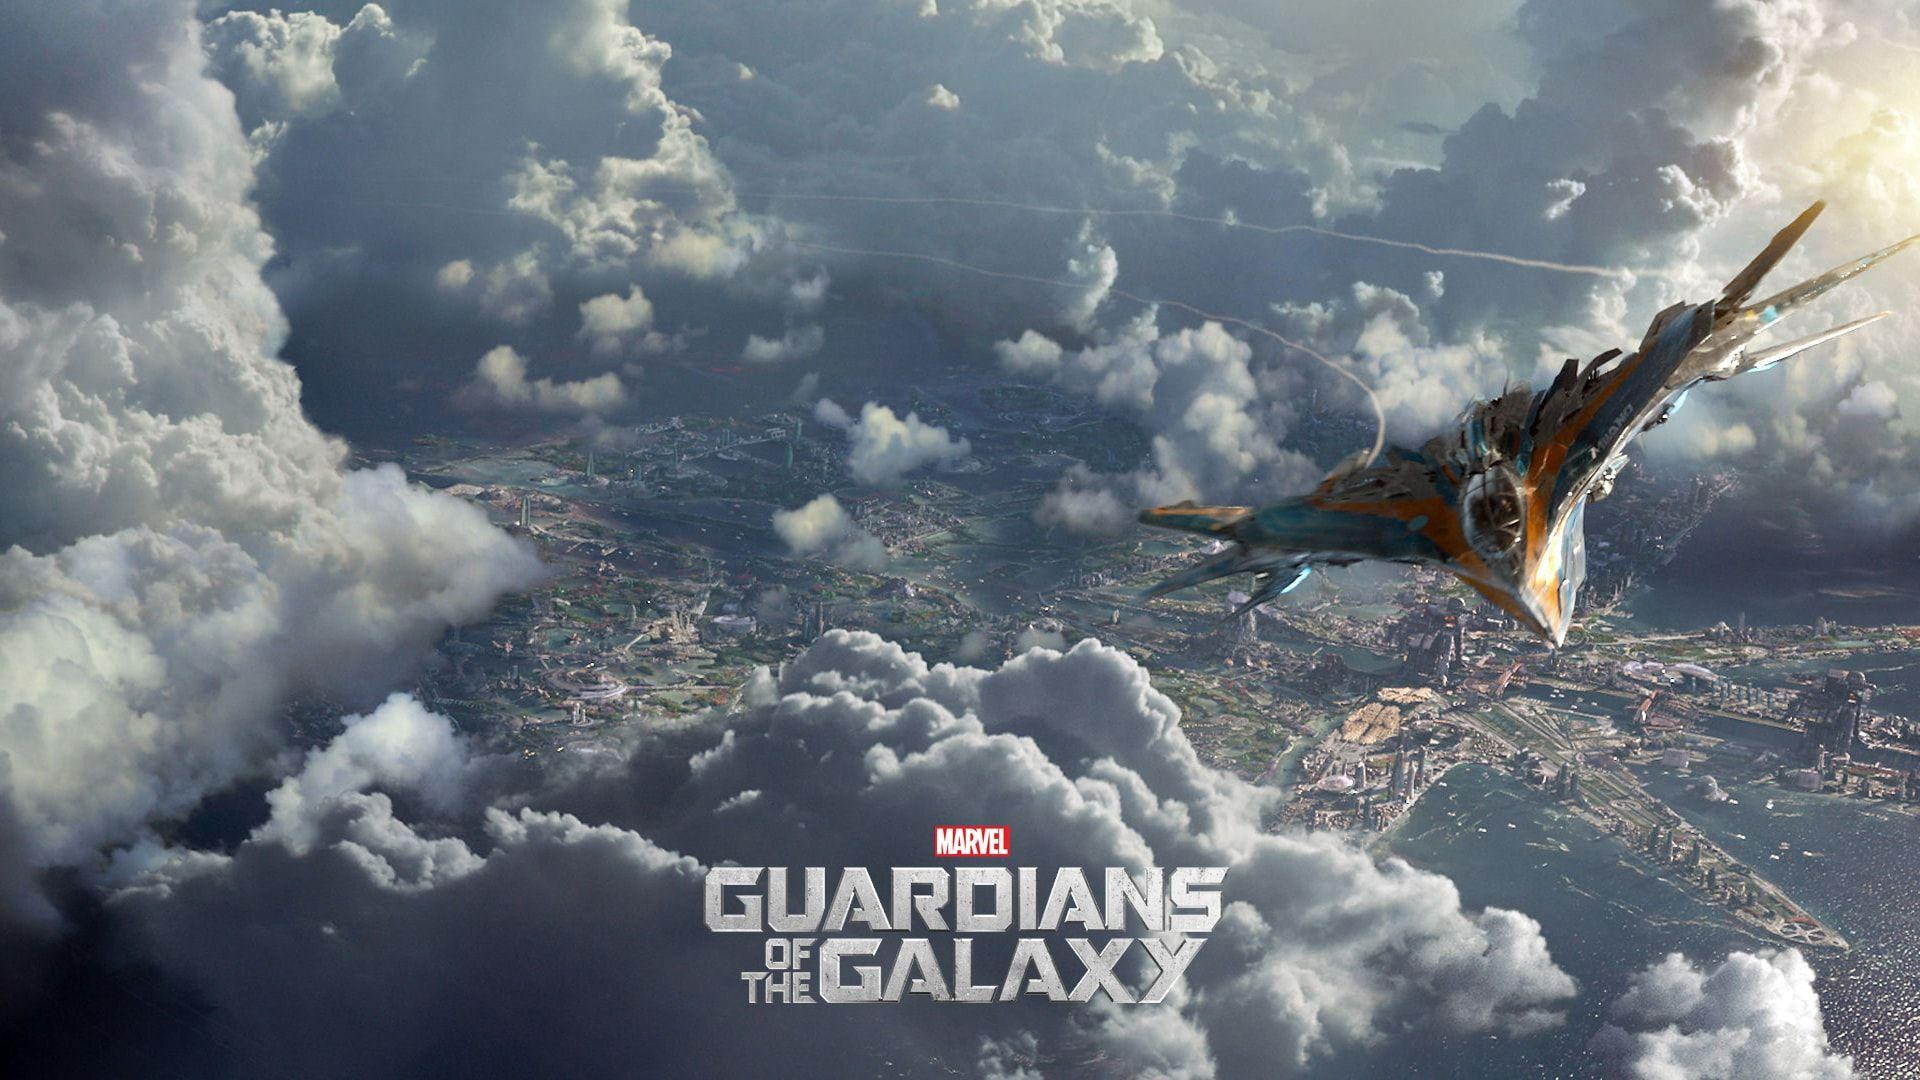 Guardians Of The Galaxy HD Desktop Wallpapers